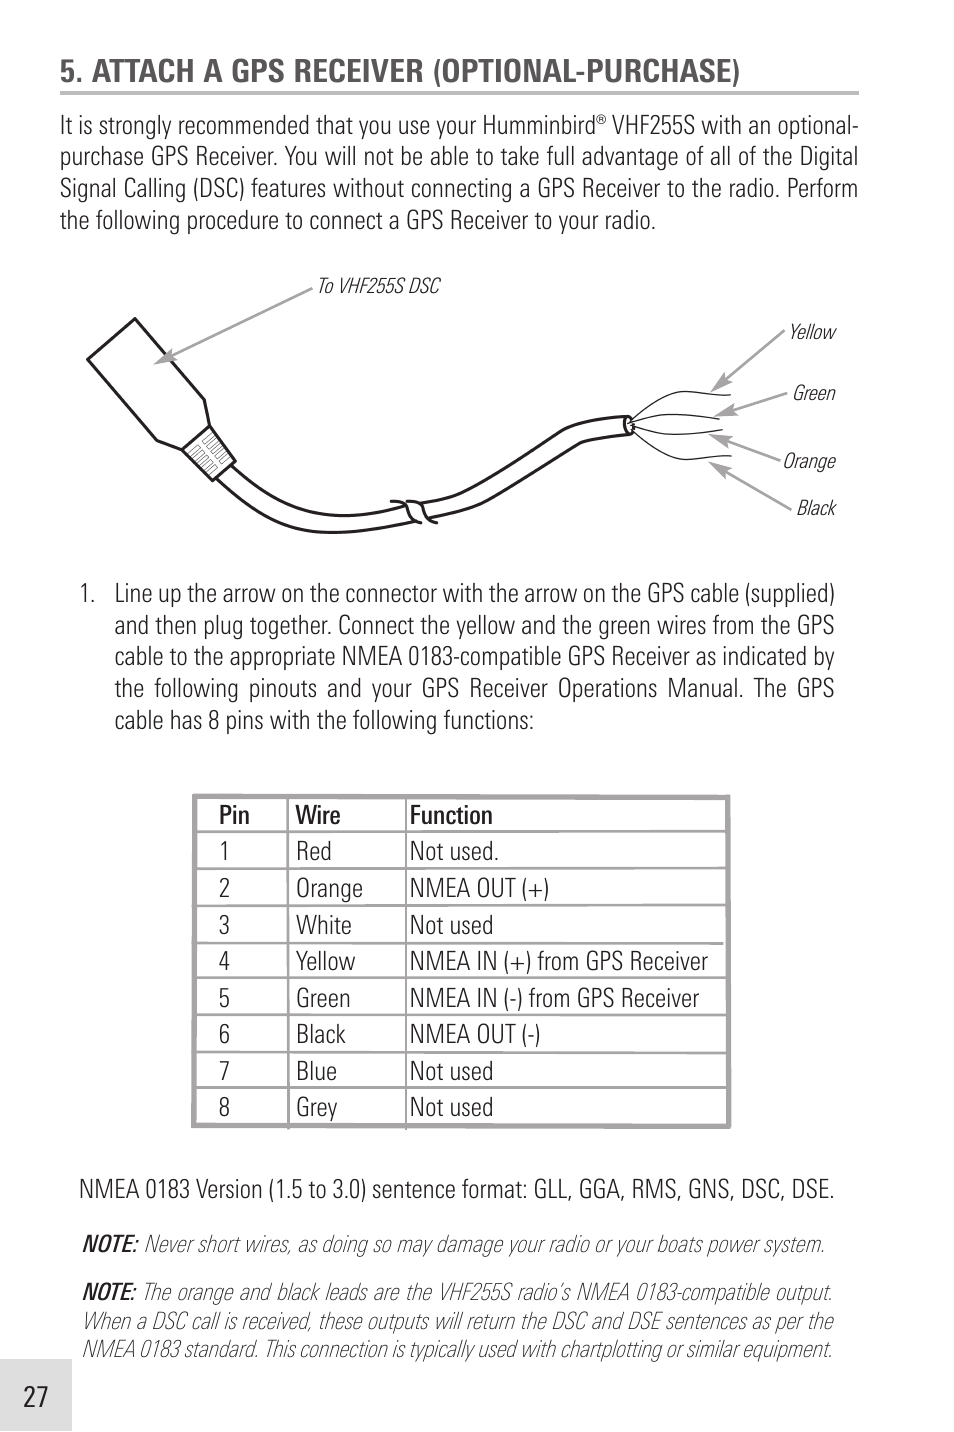 medium resolution of attach a gps receiver optional purchase humminbird vhf255sw user manual page